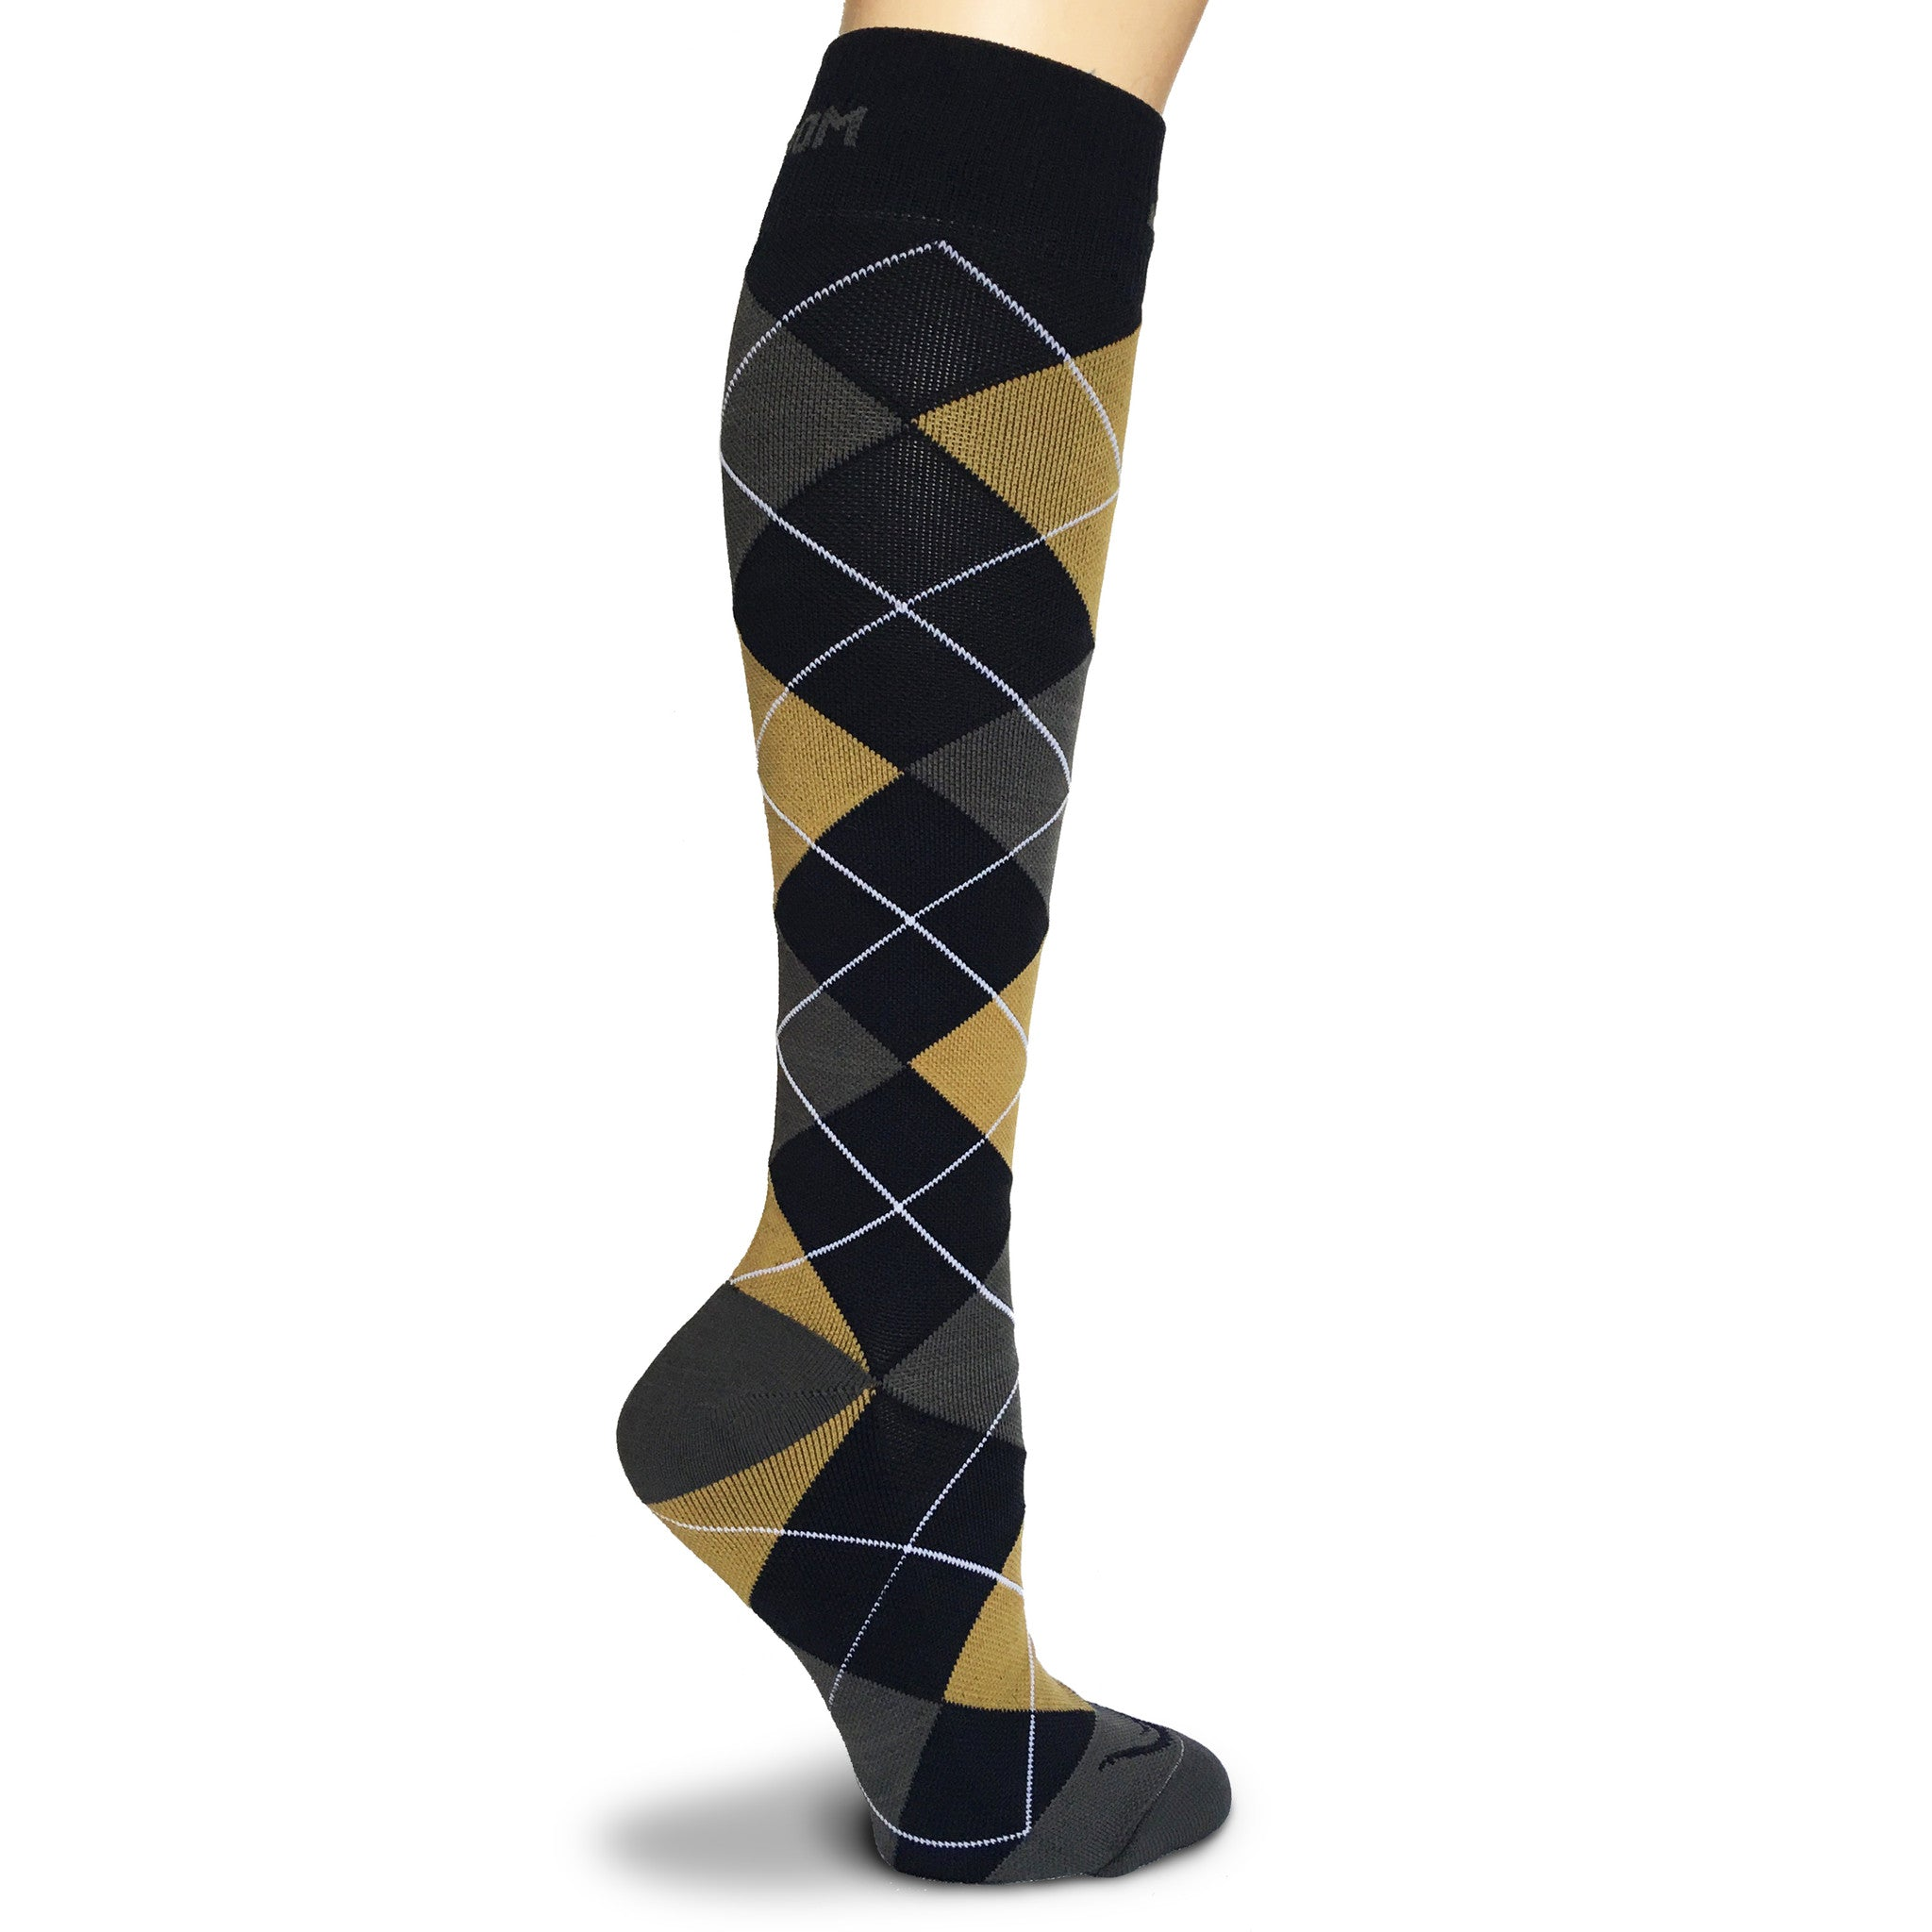 Argyle 20 - 30 mmhg Graduated Compression Socks